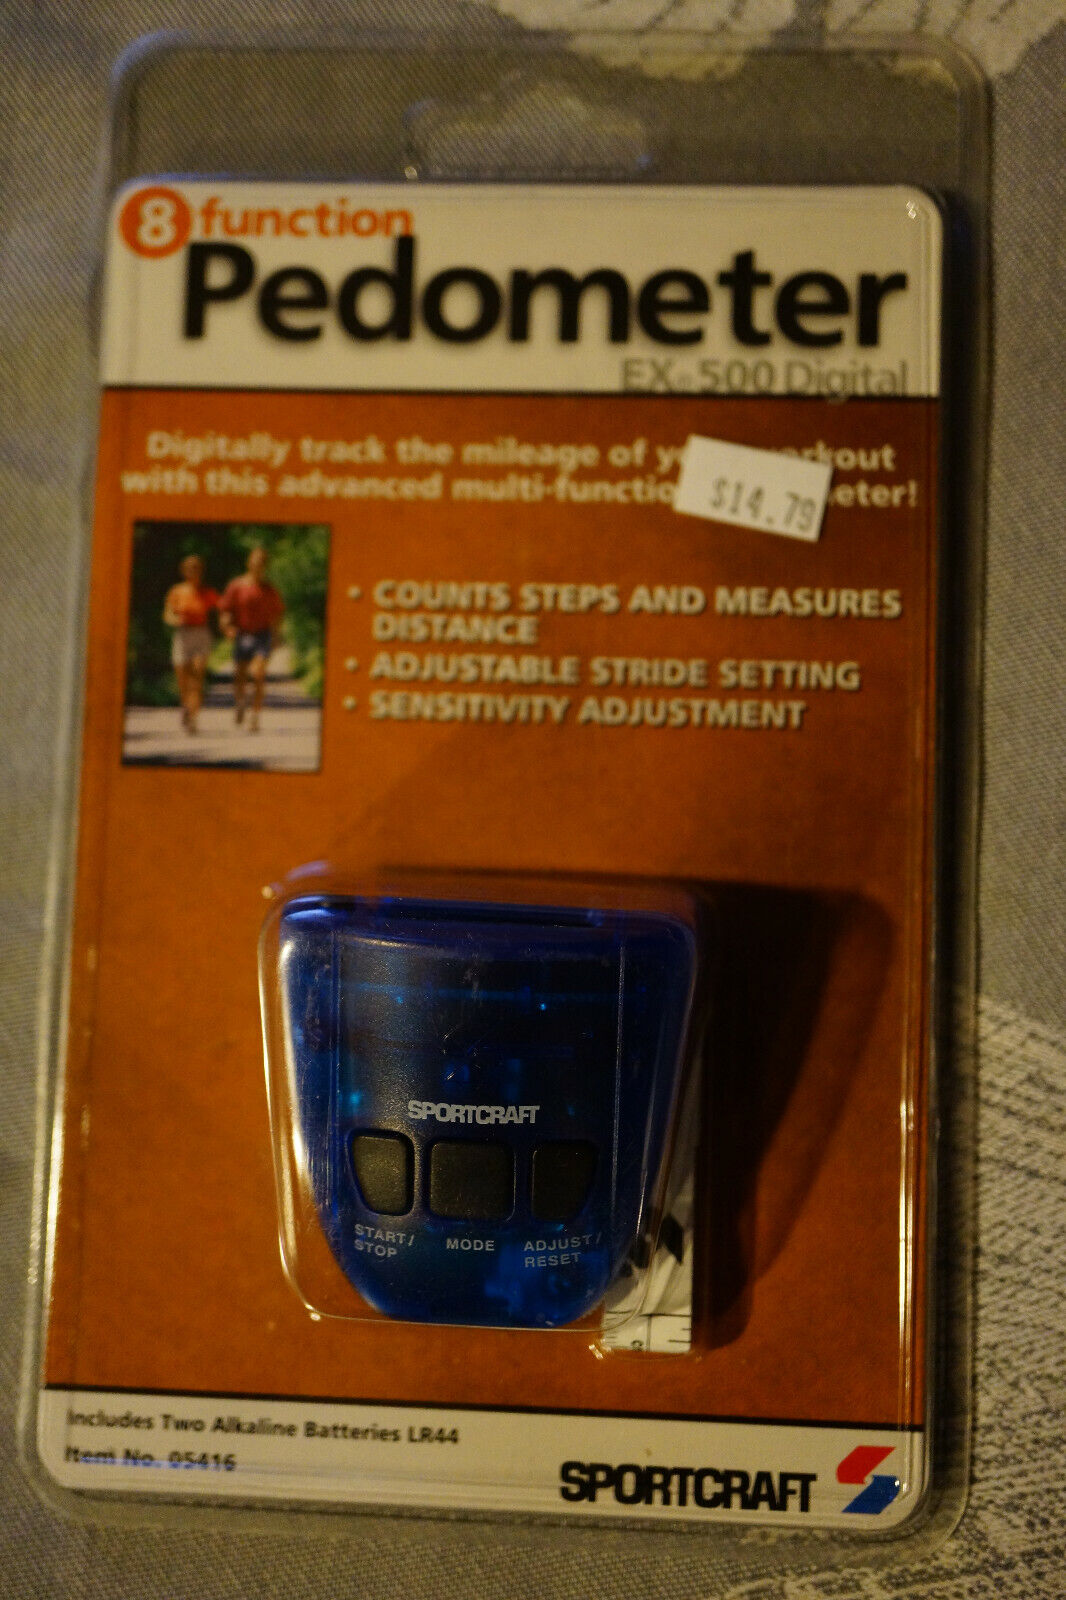 pedometer 8 function by new old stock